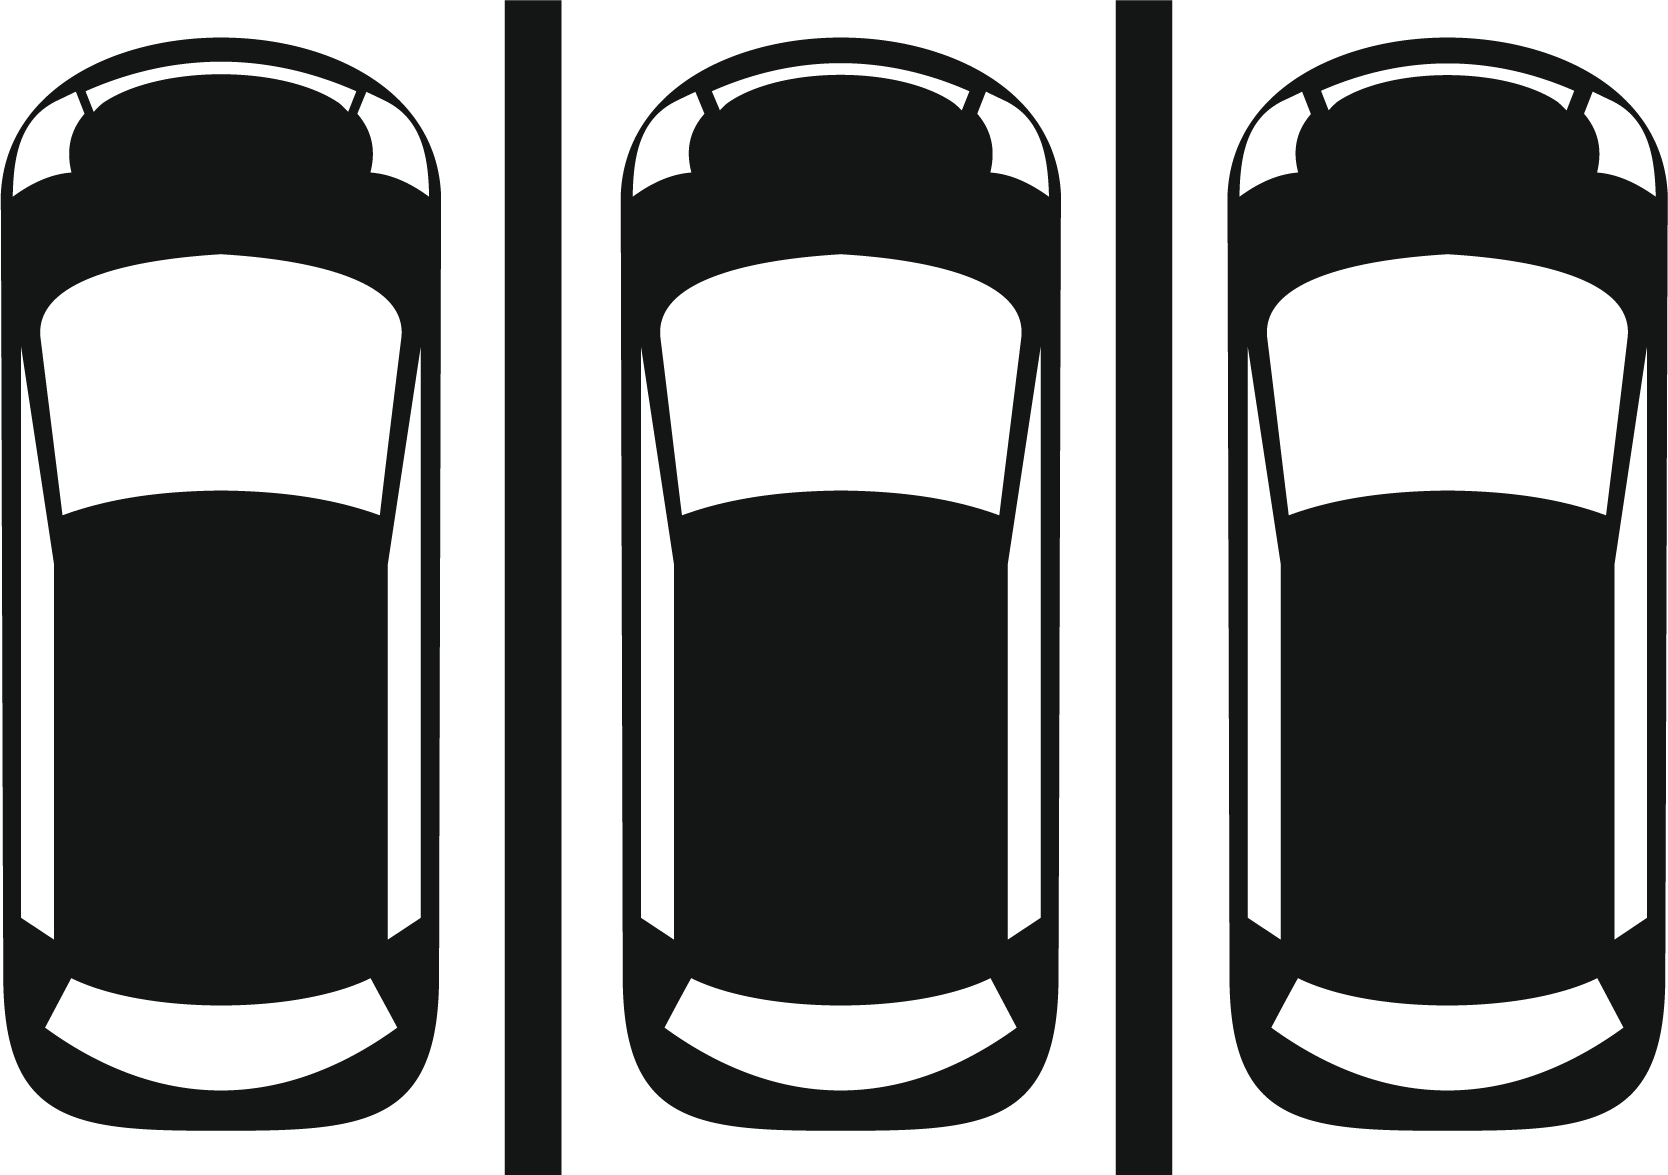 Pacific coast inc. Parking lot clipart valet parking